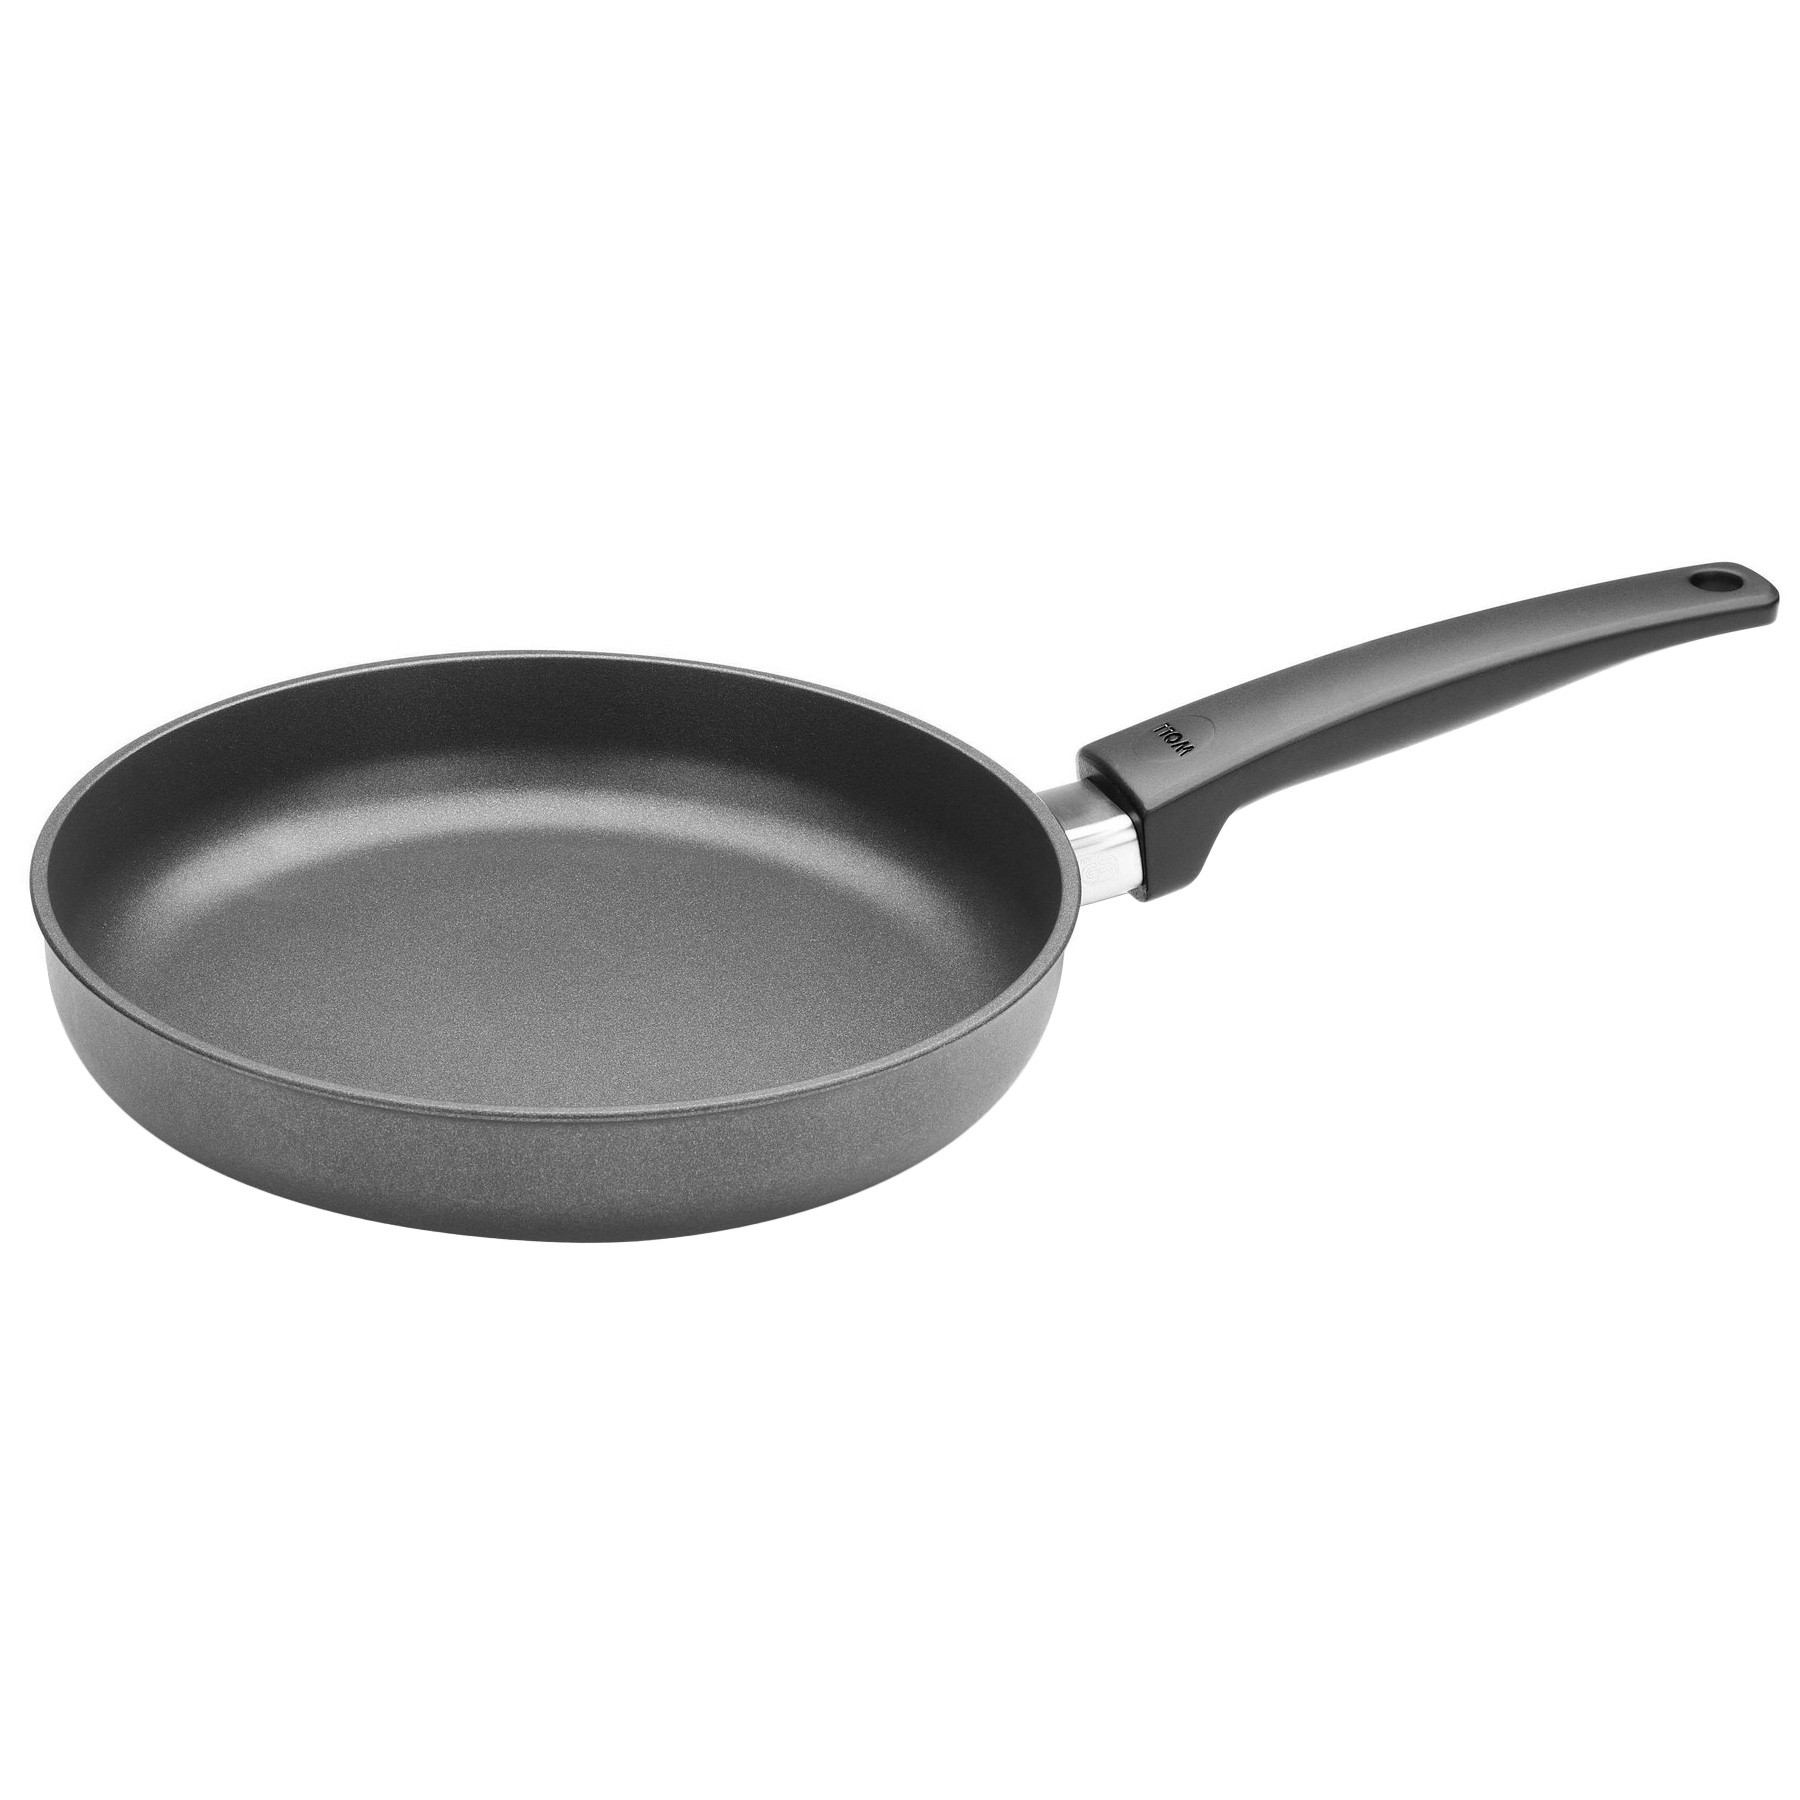 Woll Saphir Lite Induction Frypan, 24cm